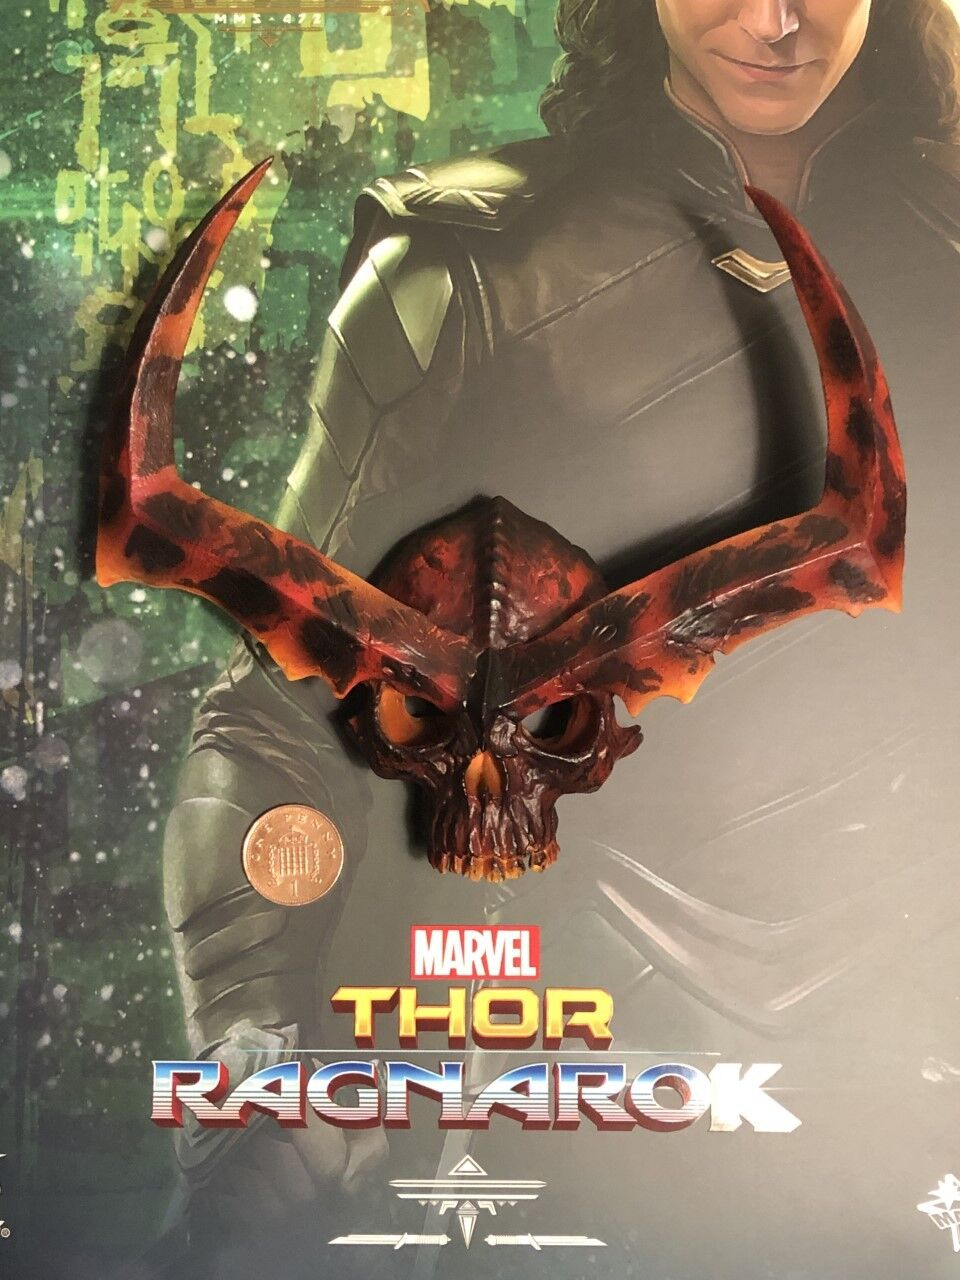 Hot Toys Thor Ragnarok Loki MMS472 Surtur's Skull loose 1 6th scale